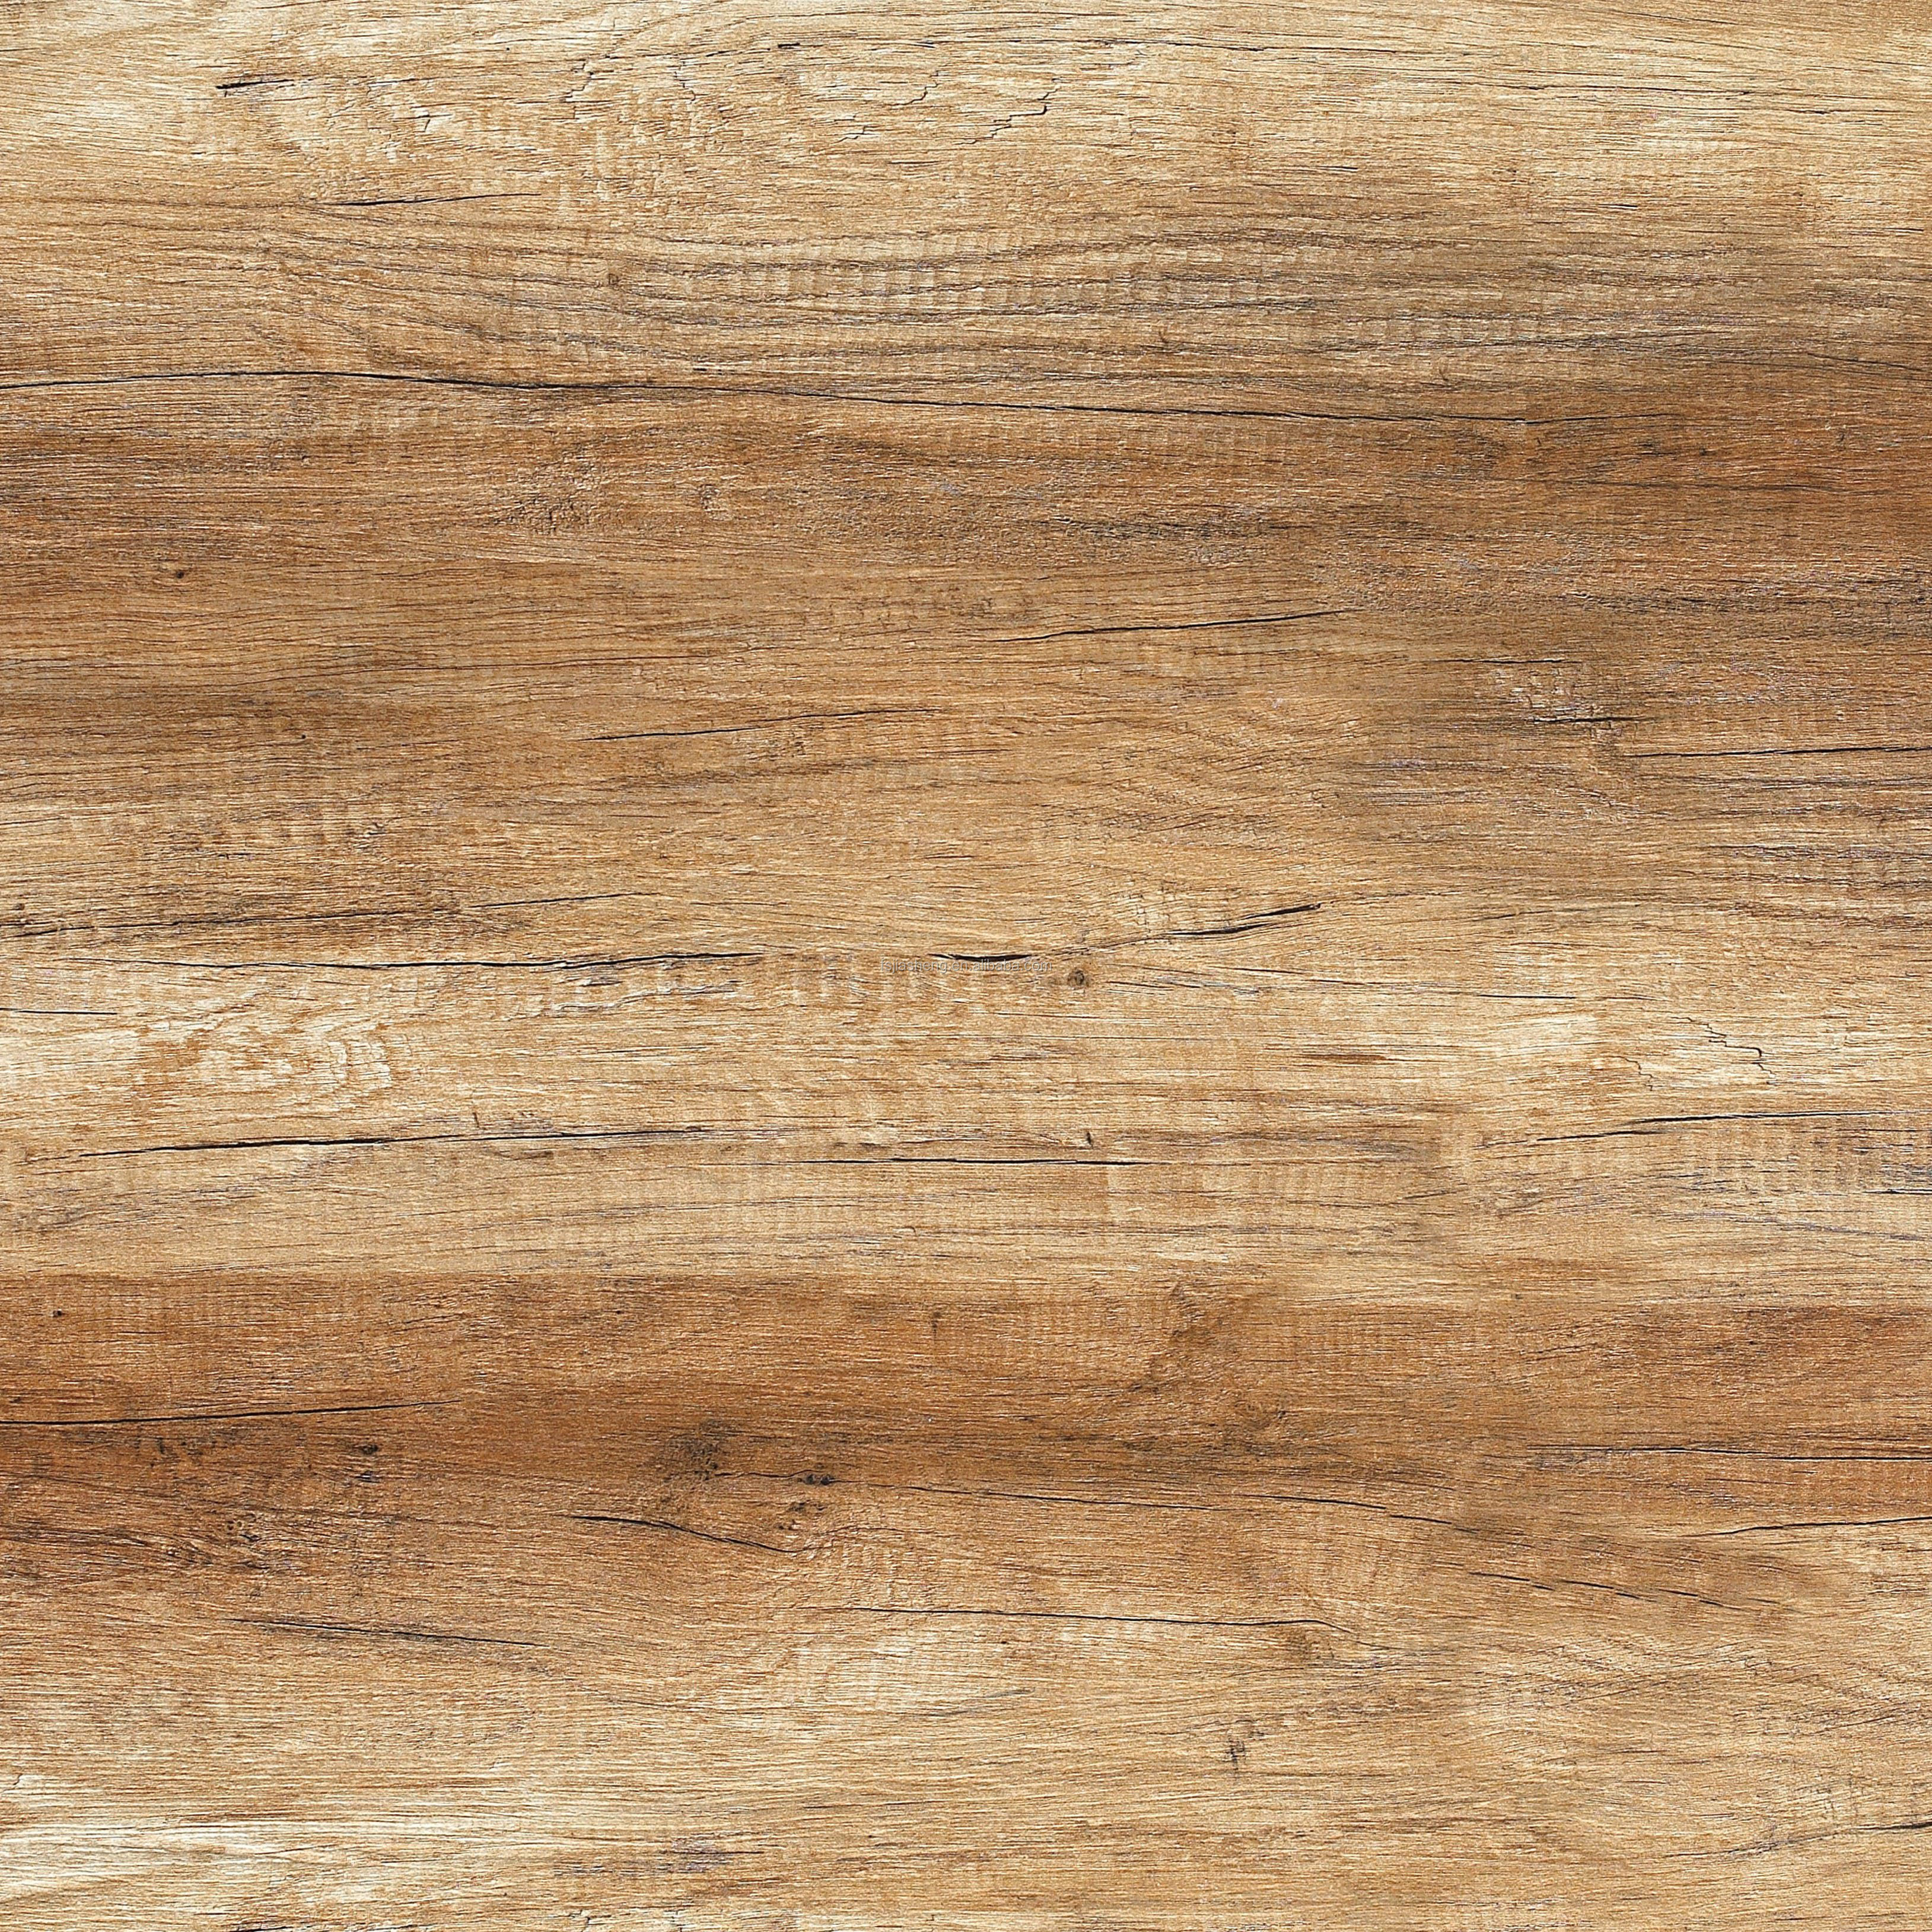 600*600 600*900mm non-slip old boat wood look porcelain tile rustic wood design look ceramic floor tile